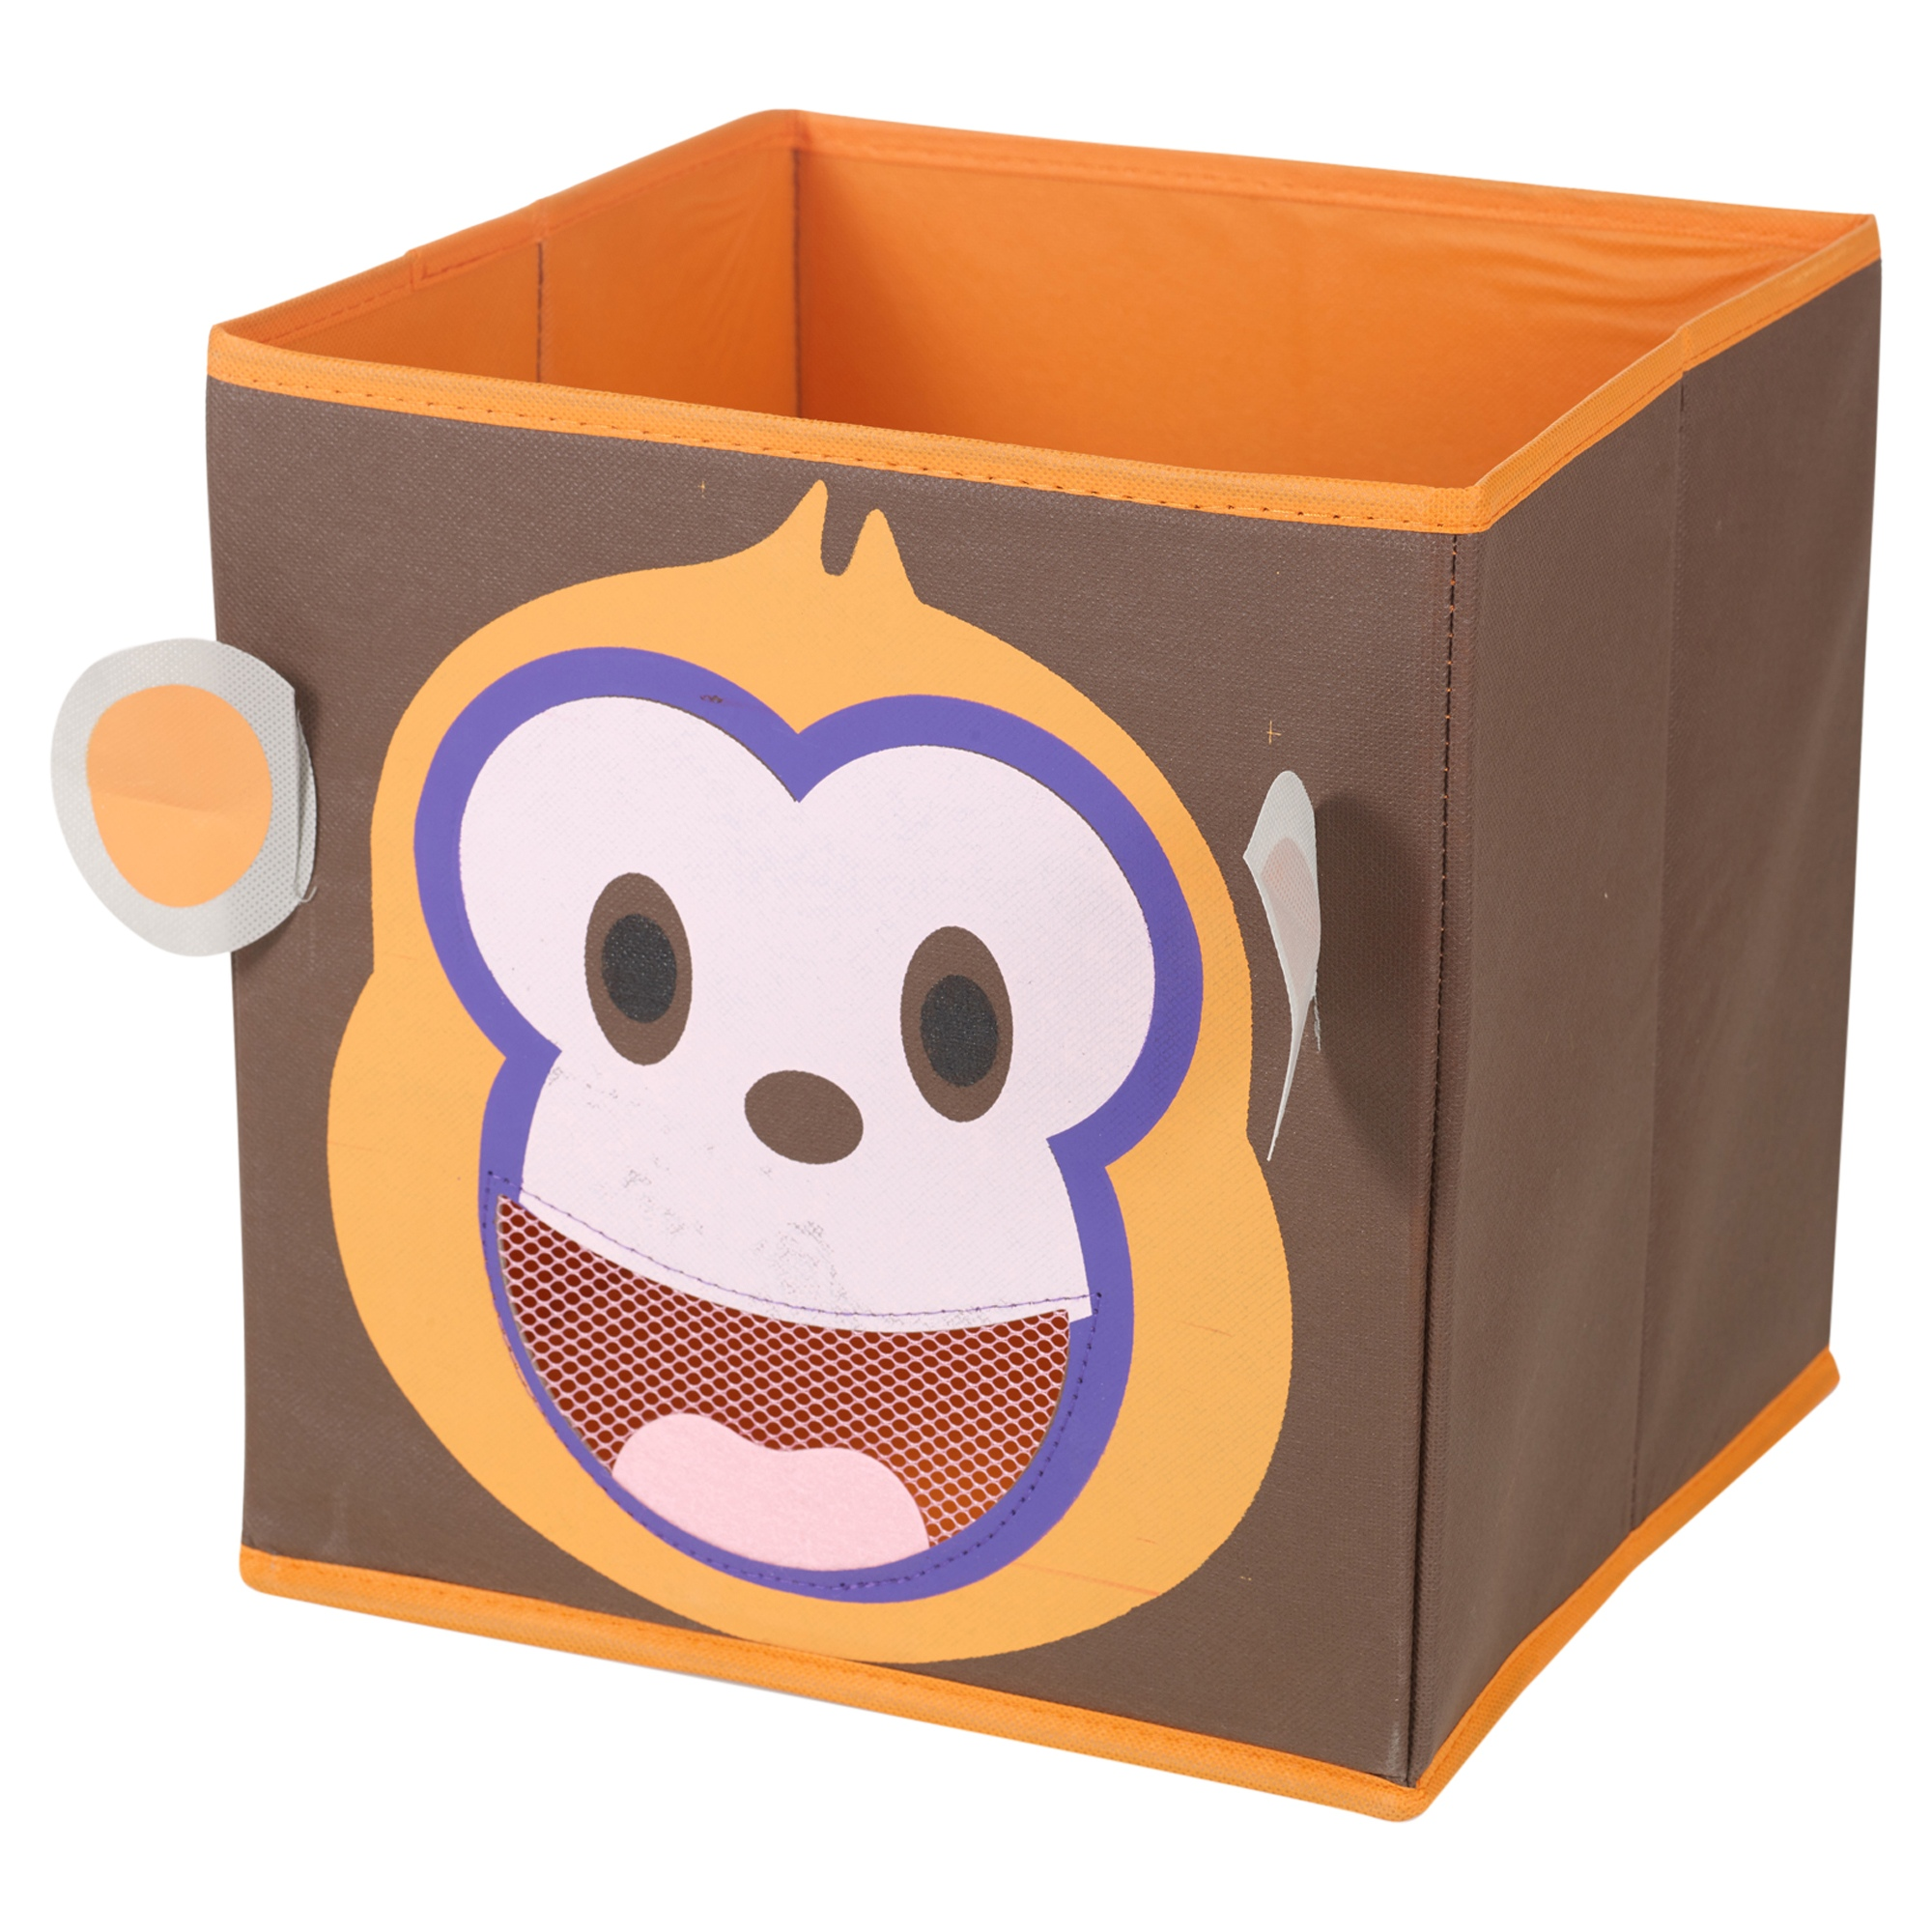 New Non Woven Fabric Folding Underwear Storage Box Bedroom: Kids Toy Animal Storage Box Non Woven Fabric Collapsible